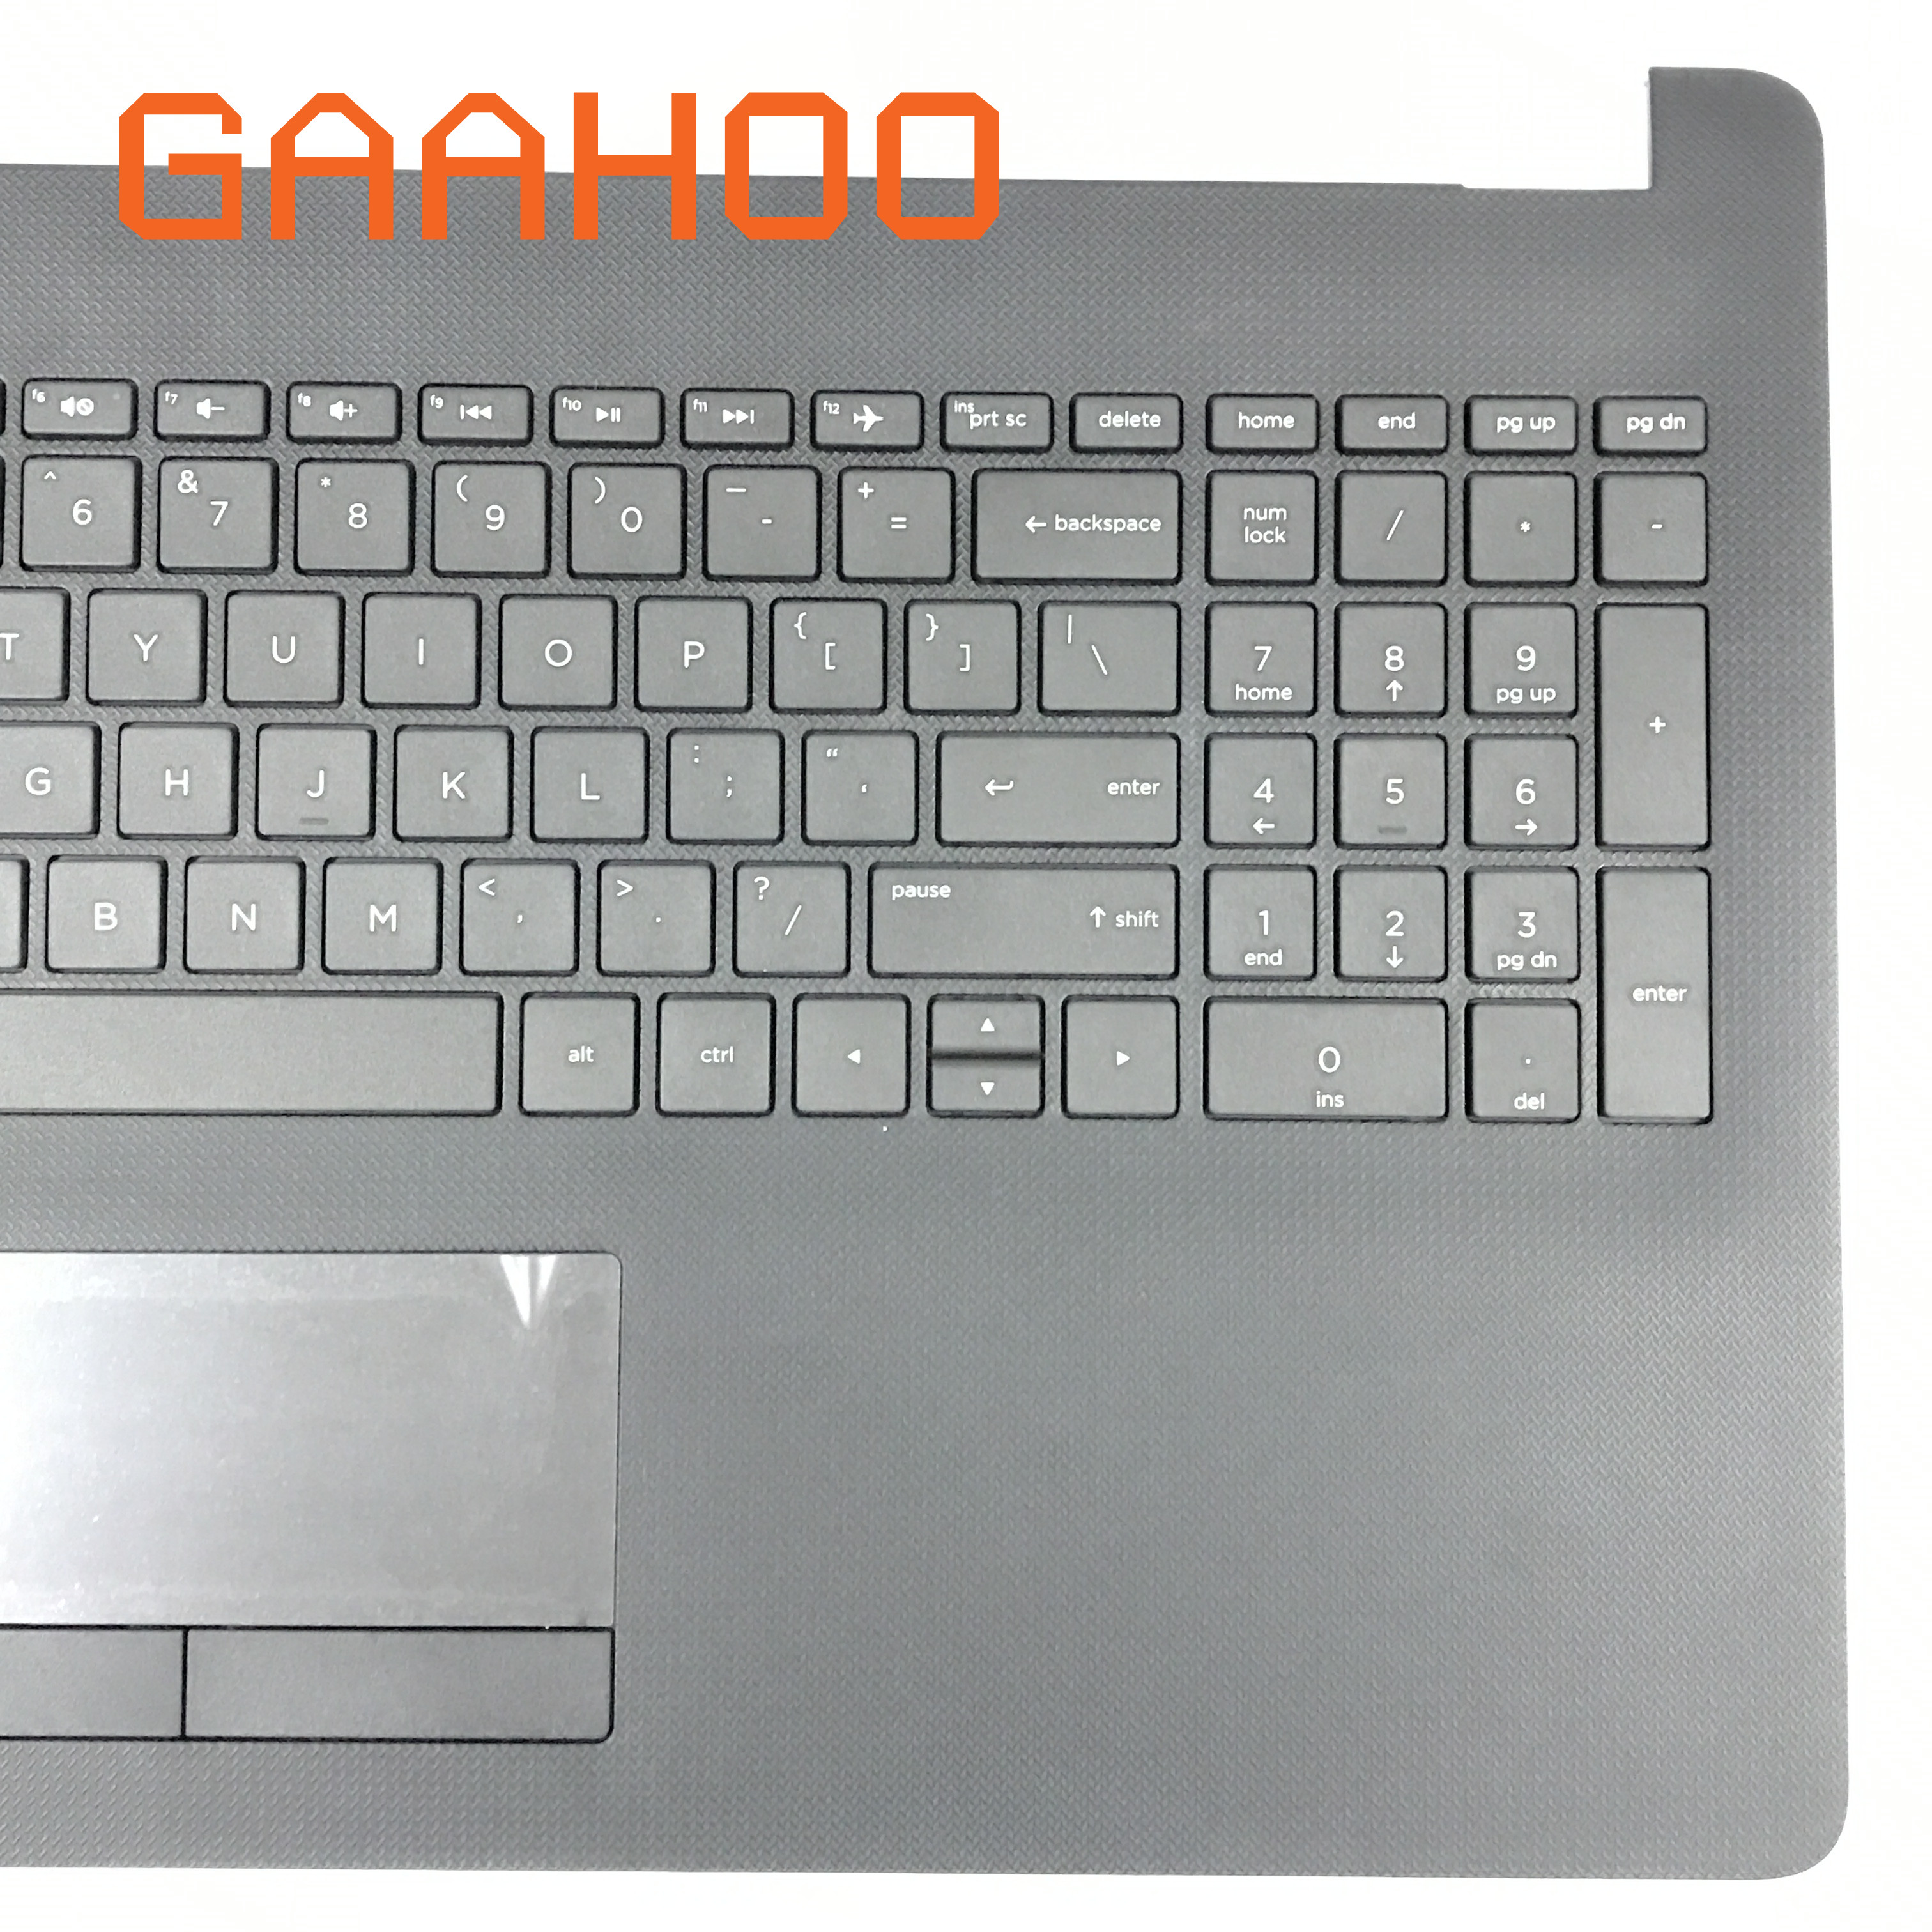 Brand new Laptop replace parts for HP Pavilion 15-BW 15-BS 250 G6 255 g6 256 g6 US keyboard and Palmrest assembly w/o touchpad